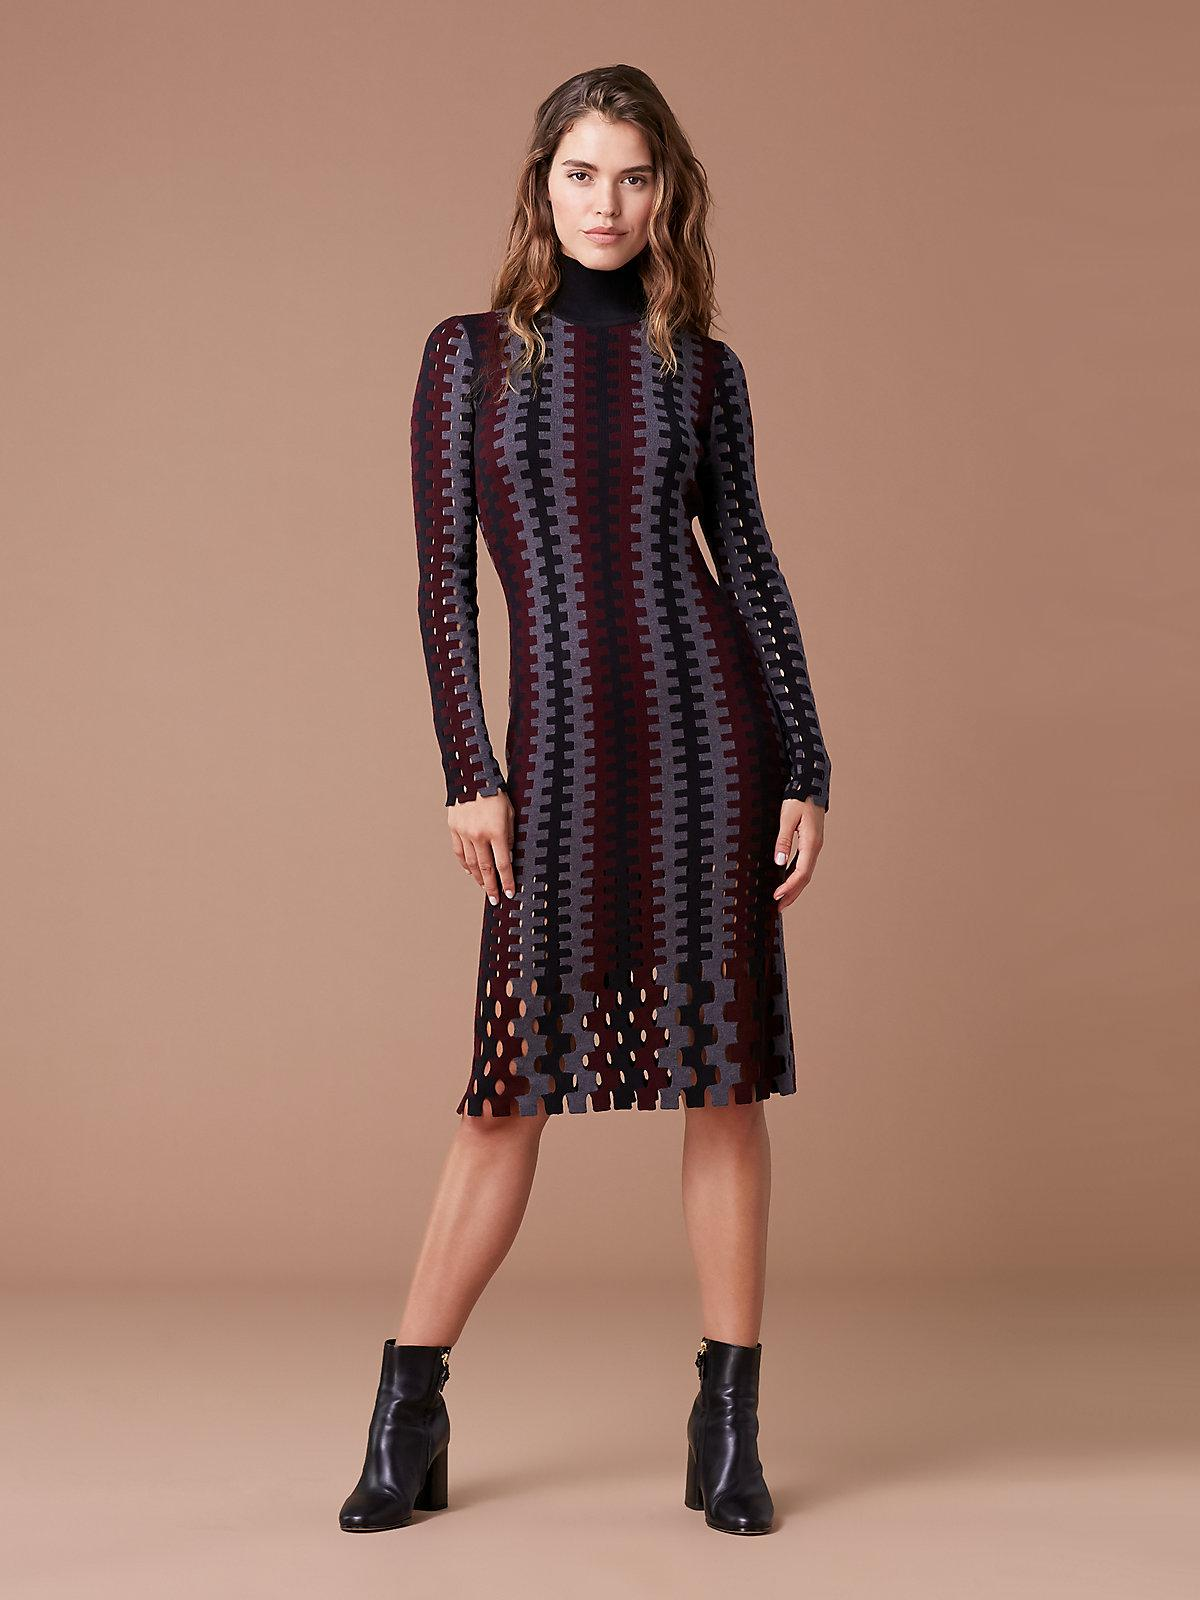 427a6785898a Diane von Furstenberg - Blue Turtleneck Knit Wool Midi Dress - Lyst. View  fullscreen